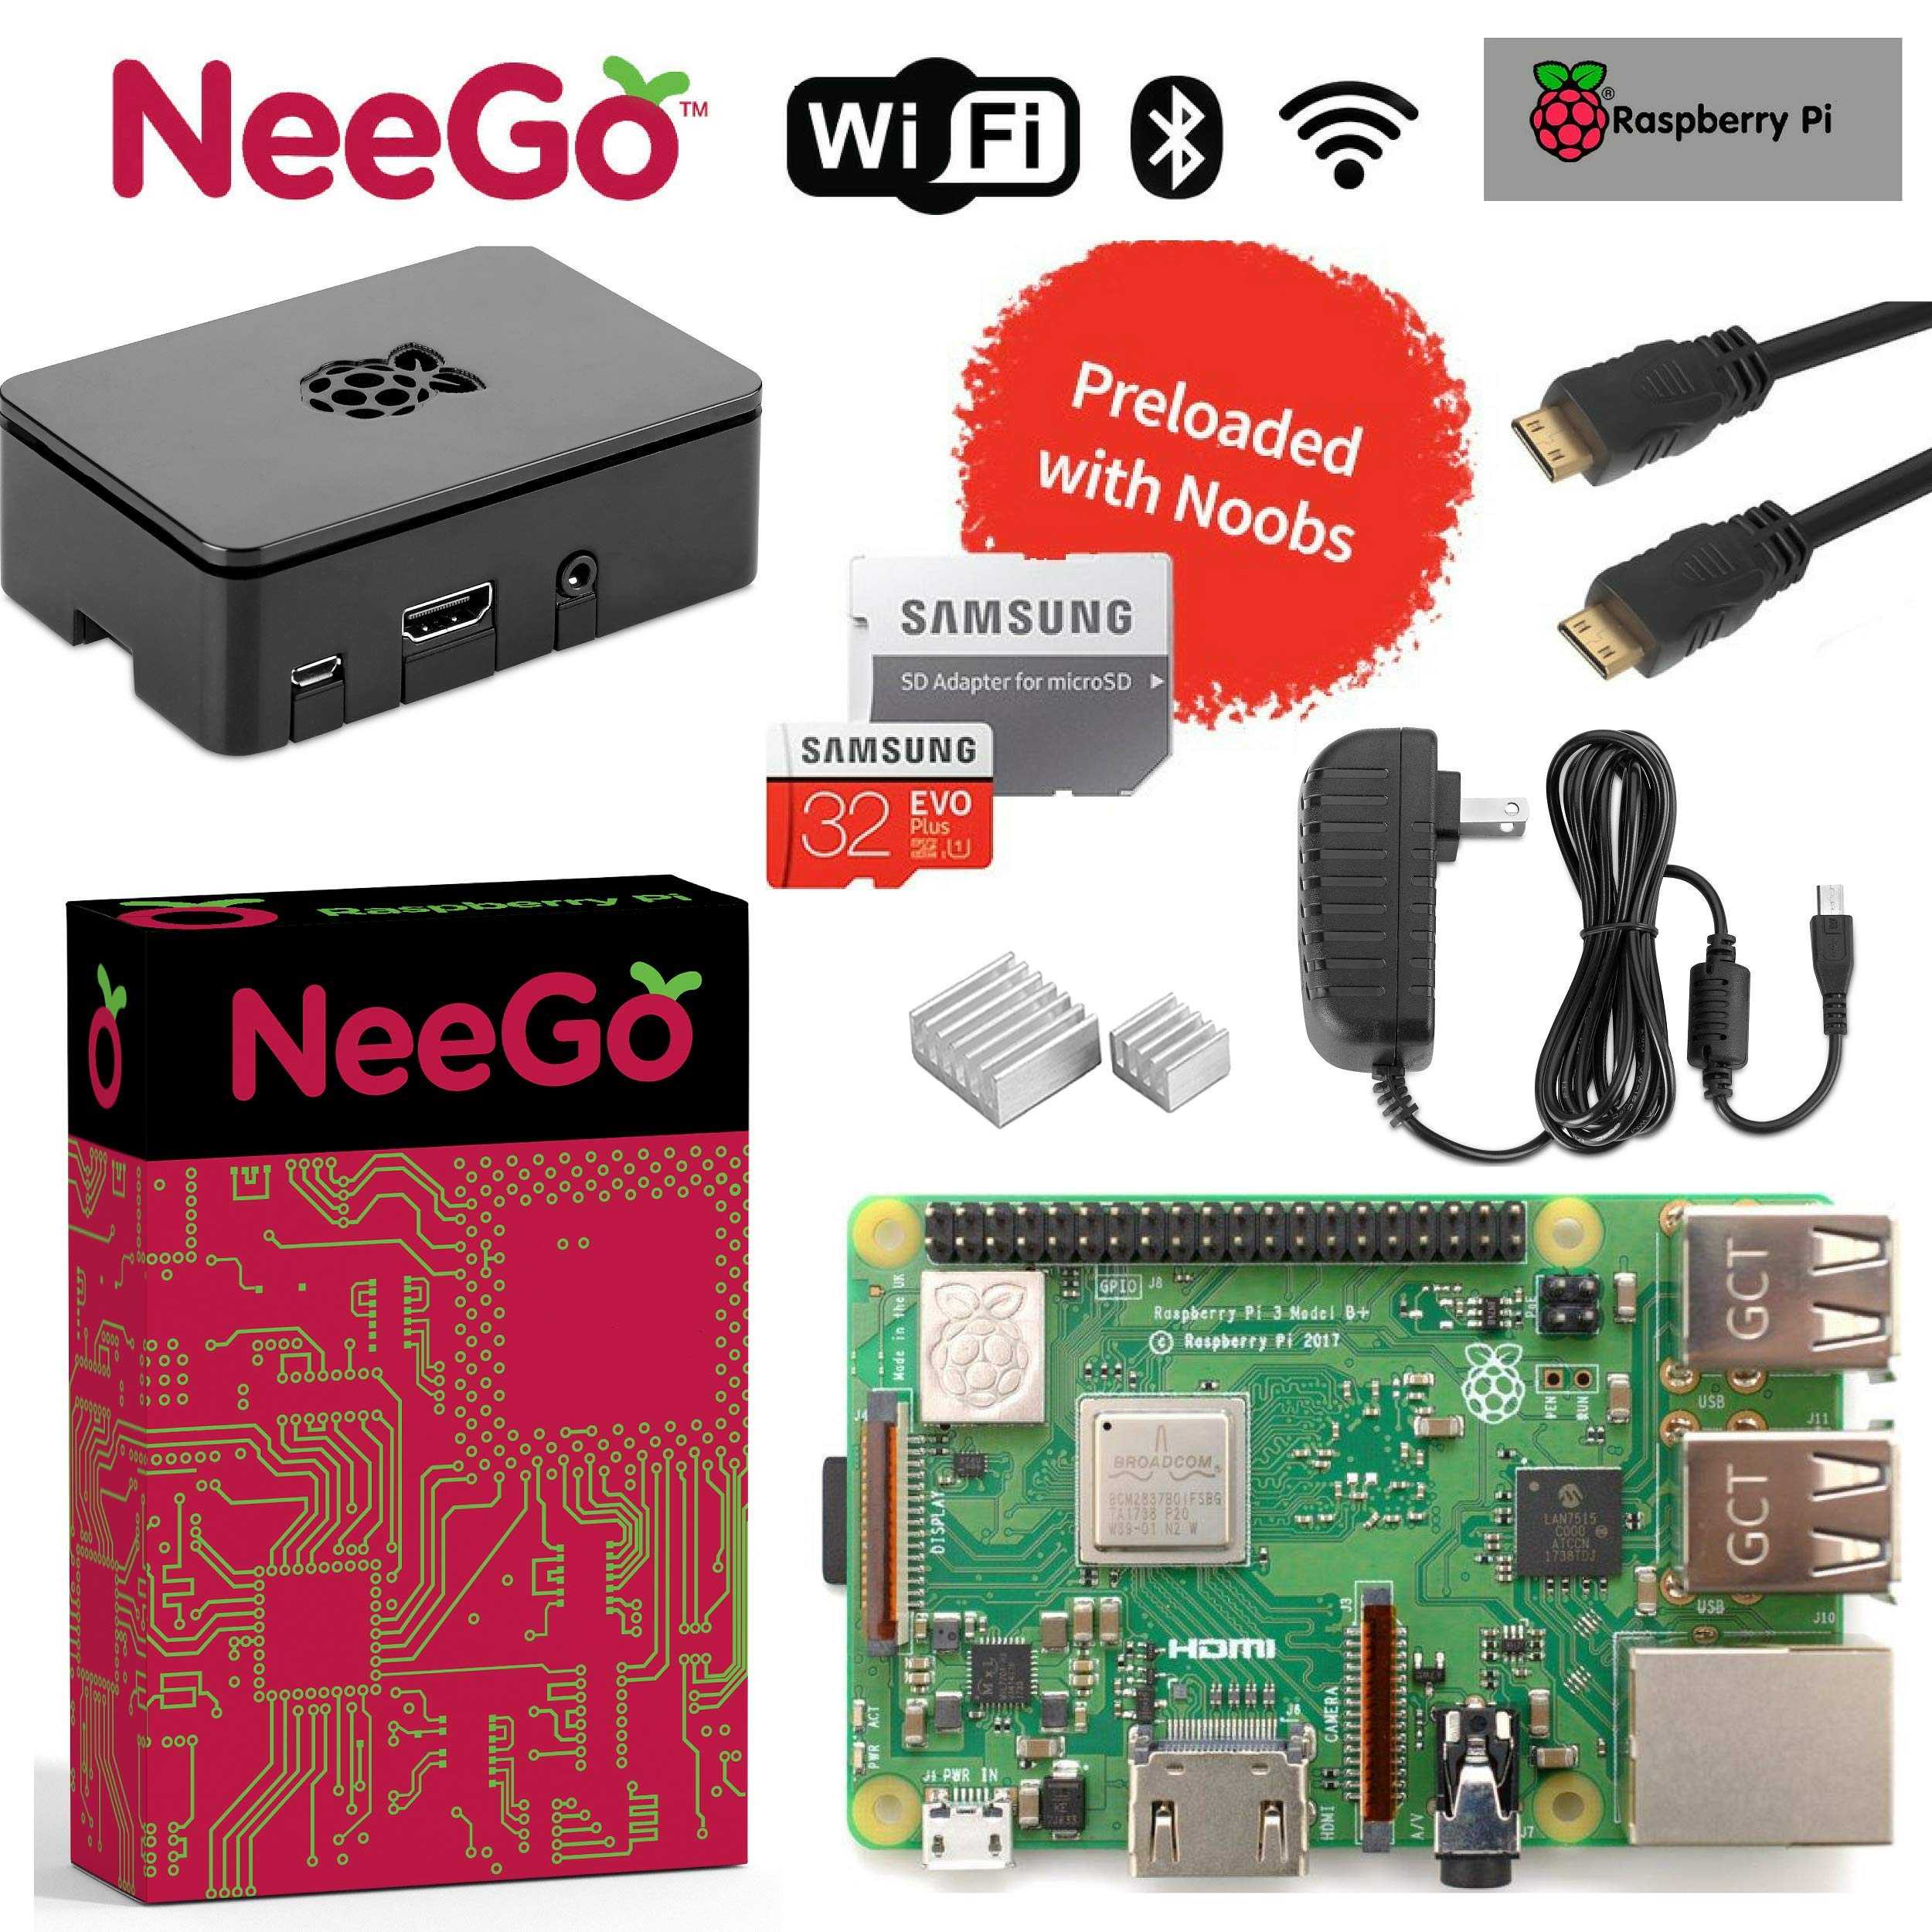 "16GB SD Card NEEGO Raspberry Pi 3 Ultimate Starter Kit 7/"" Touchscreen Display Official Case /& 6ft HDMI Cable Power Supply 2 Heatsinks Complete Set Includes Raspberry Pi 3 Model B Motherboard"